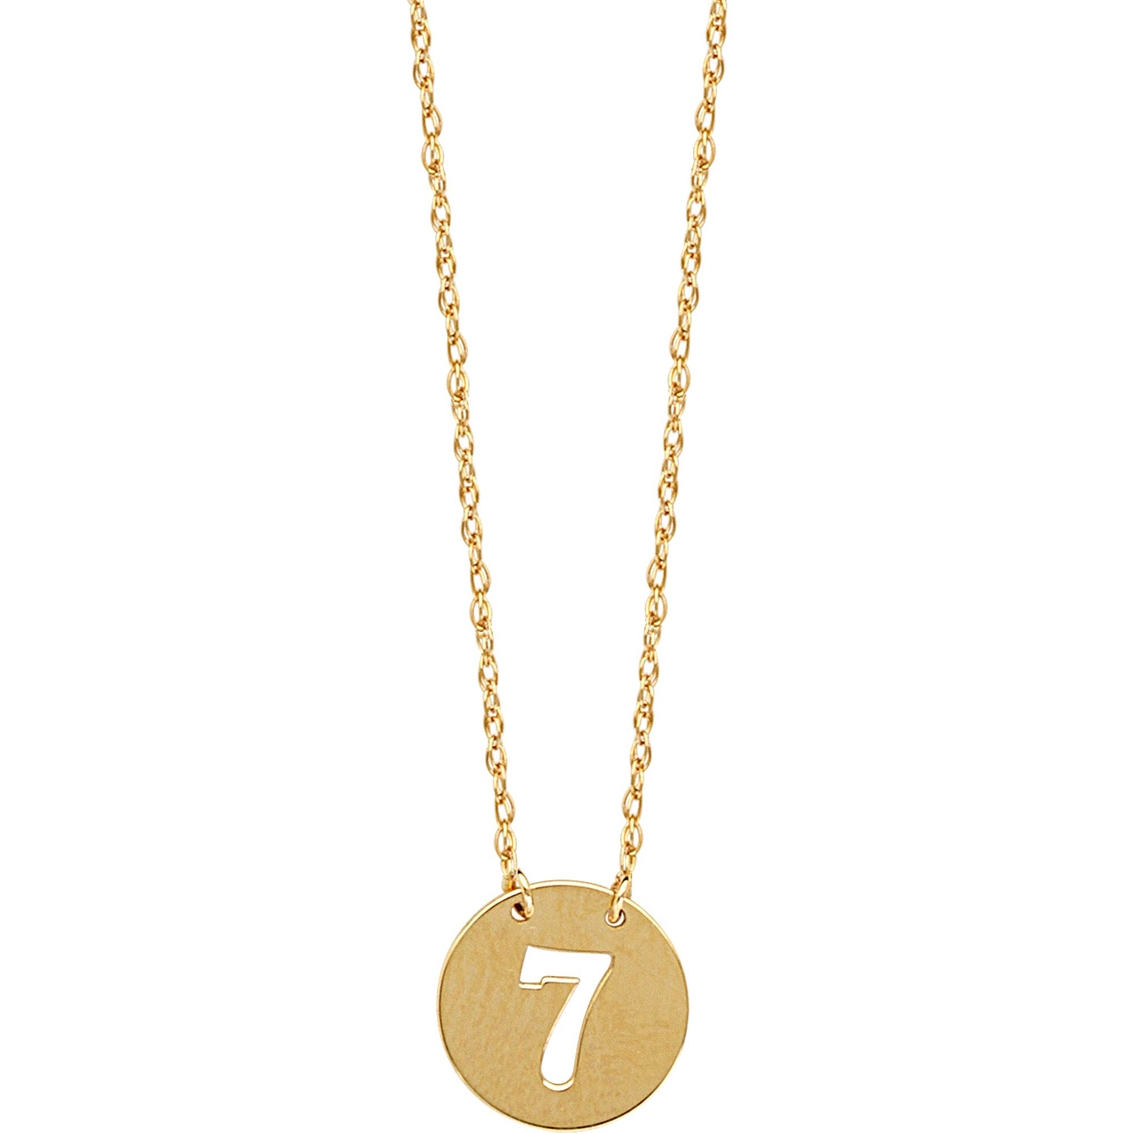 FB Jewels 14K Yellow Gold Camera Cut Out and Flat Pendant